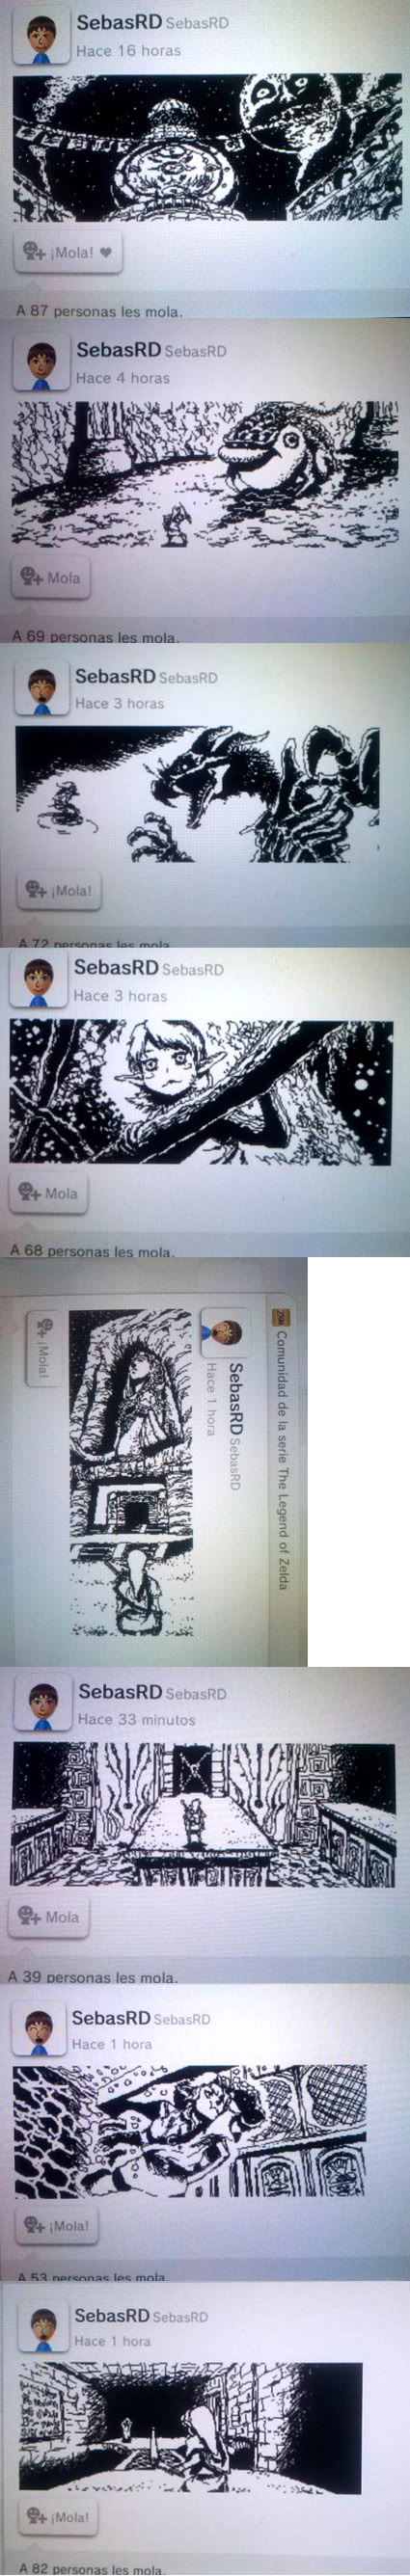 Zelda Miiverse drawings 02 by sebasrd24